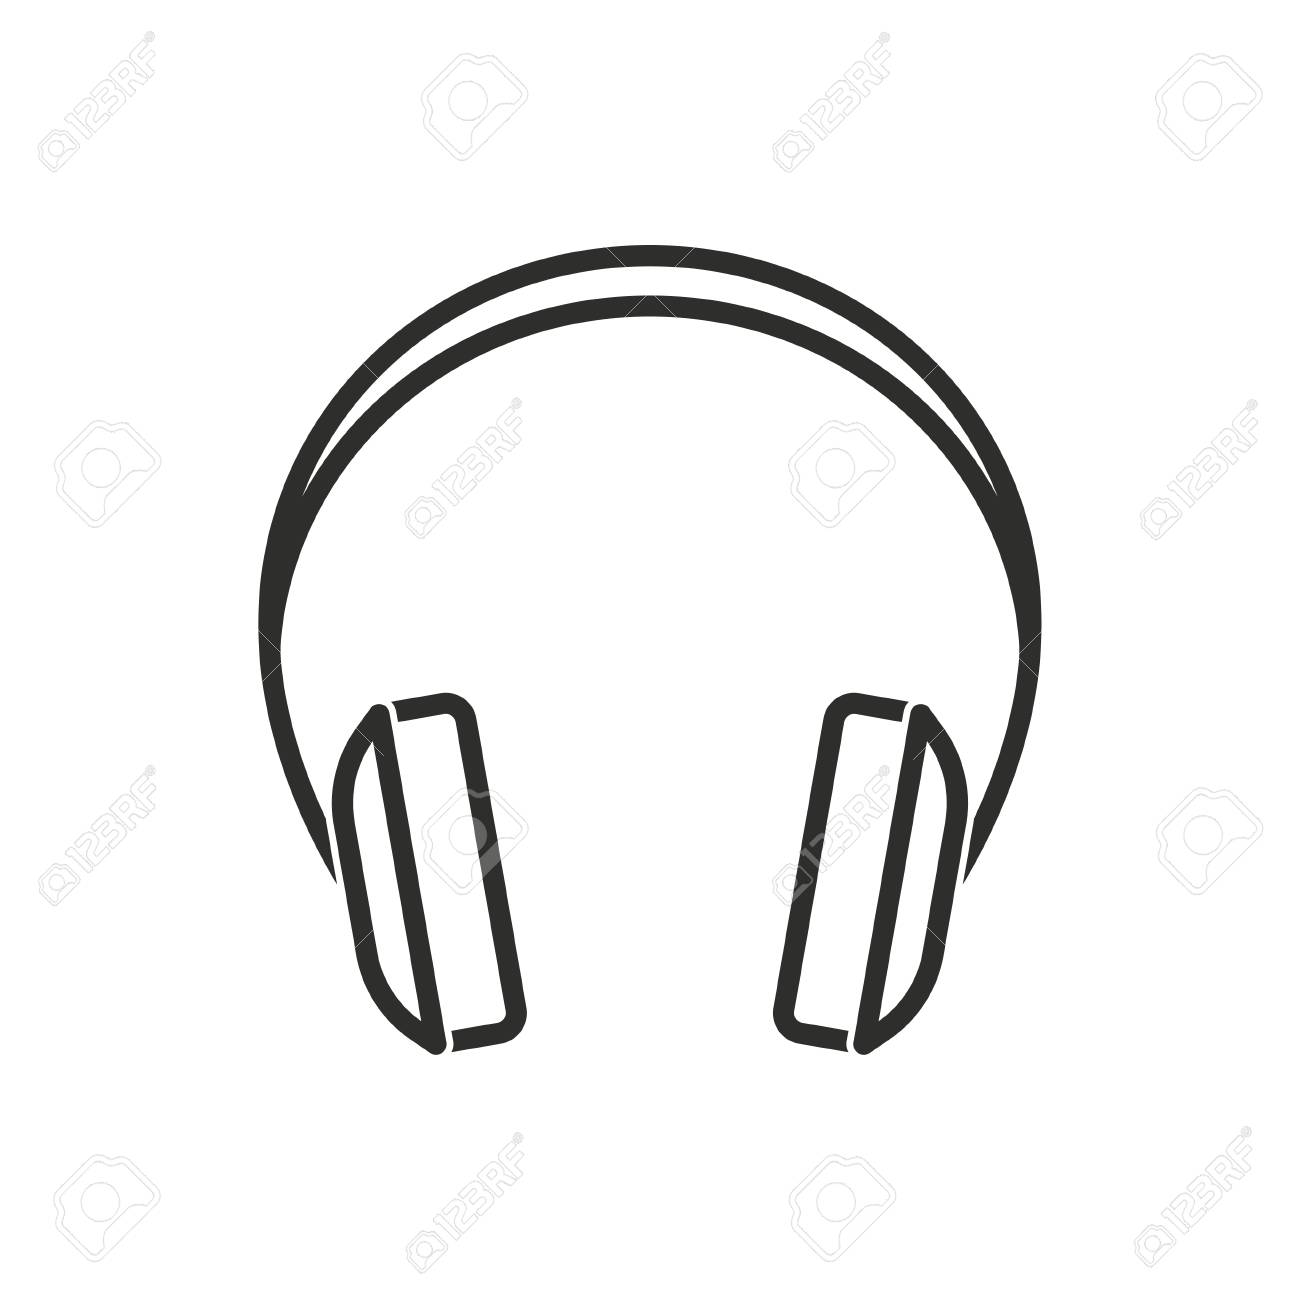 Headphone vector icon. Black illustration isolated on white background...